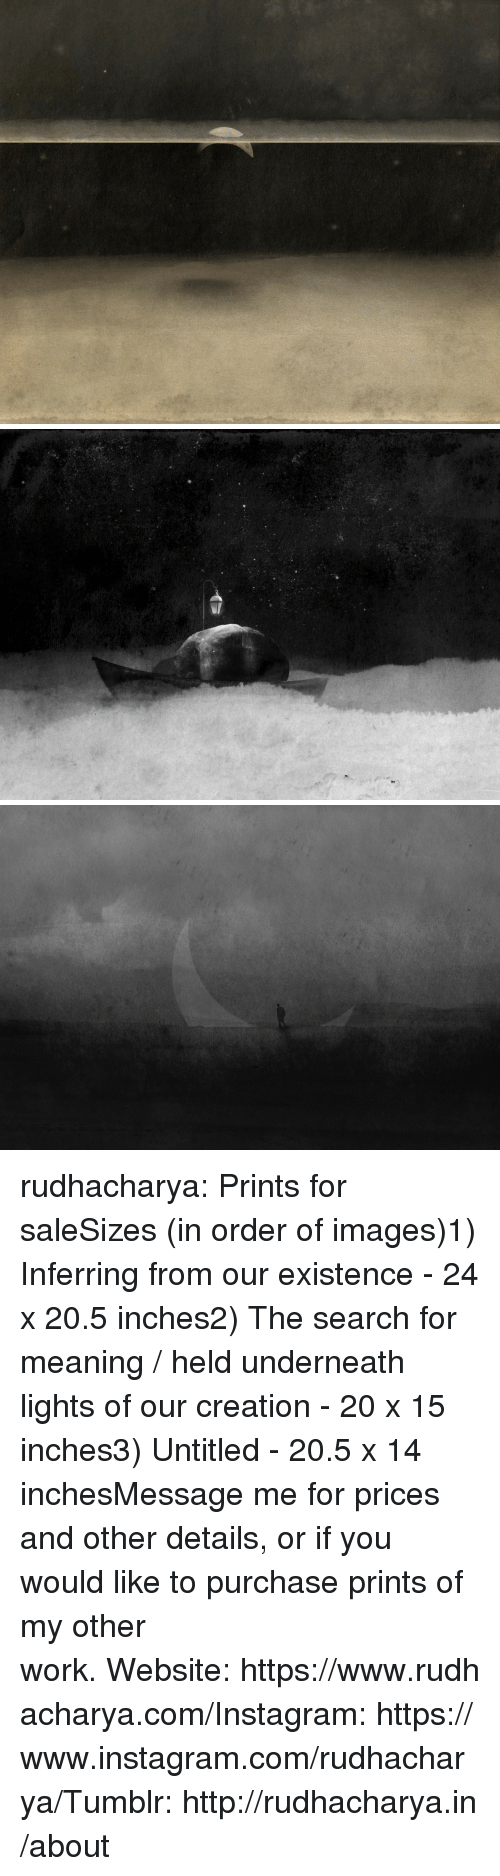 Instagram, Tumblr, and Work: rudhacharya:  Prints for saleSizes (in order of images)1) Inferring from our existence - 24 x 20.5 inches2) The search for meaning / held underneath lights of our creation- 20 x 15 inches3) Untitled - 20.5 x 14 inchesMessage me for prices and other details, or if you would like to purchase prints of my other work.Website:https://www.rudhacharya.com/Instagram:https://www.instagram.com/rudhacharya/Tumblr:http://rudhacharya.in/about